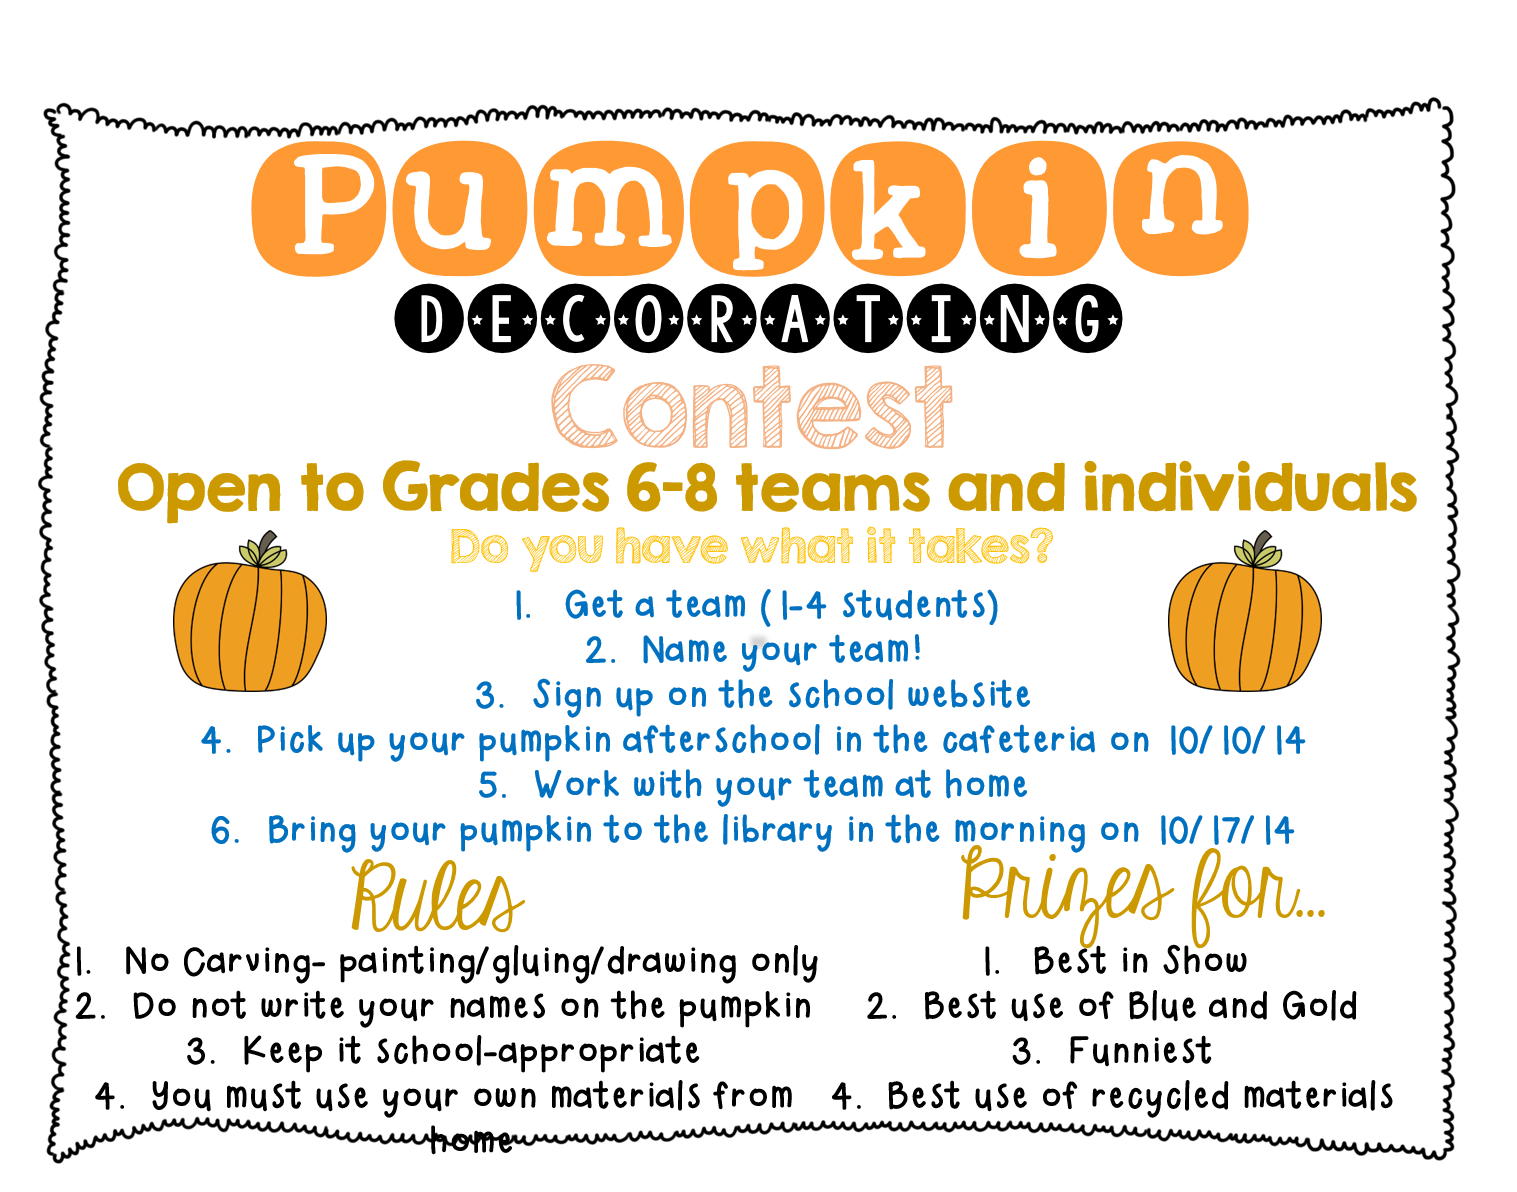 How to plan a pumpkin decorating contest everyone deserves to learn edsl pronofoot35fo Images